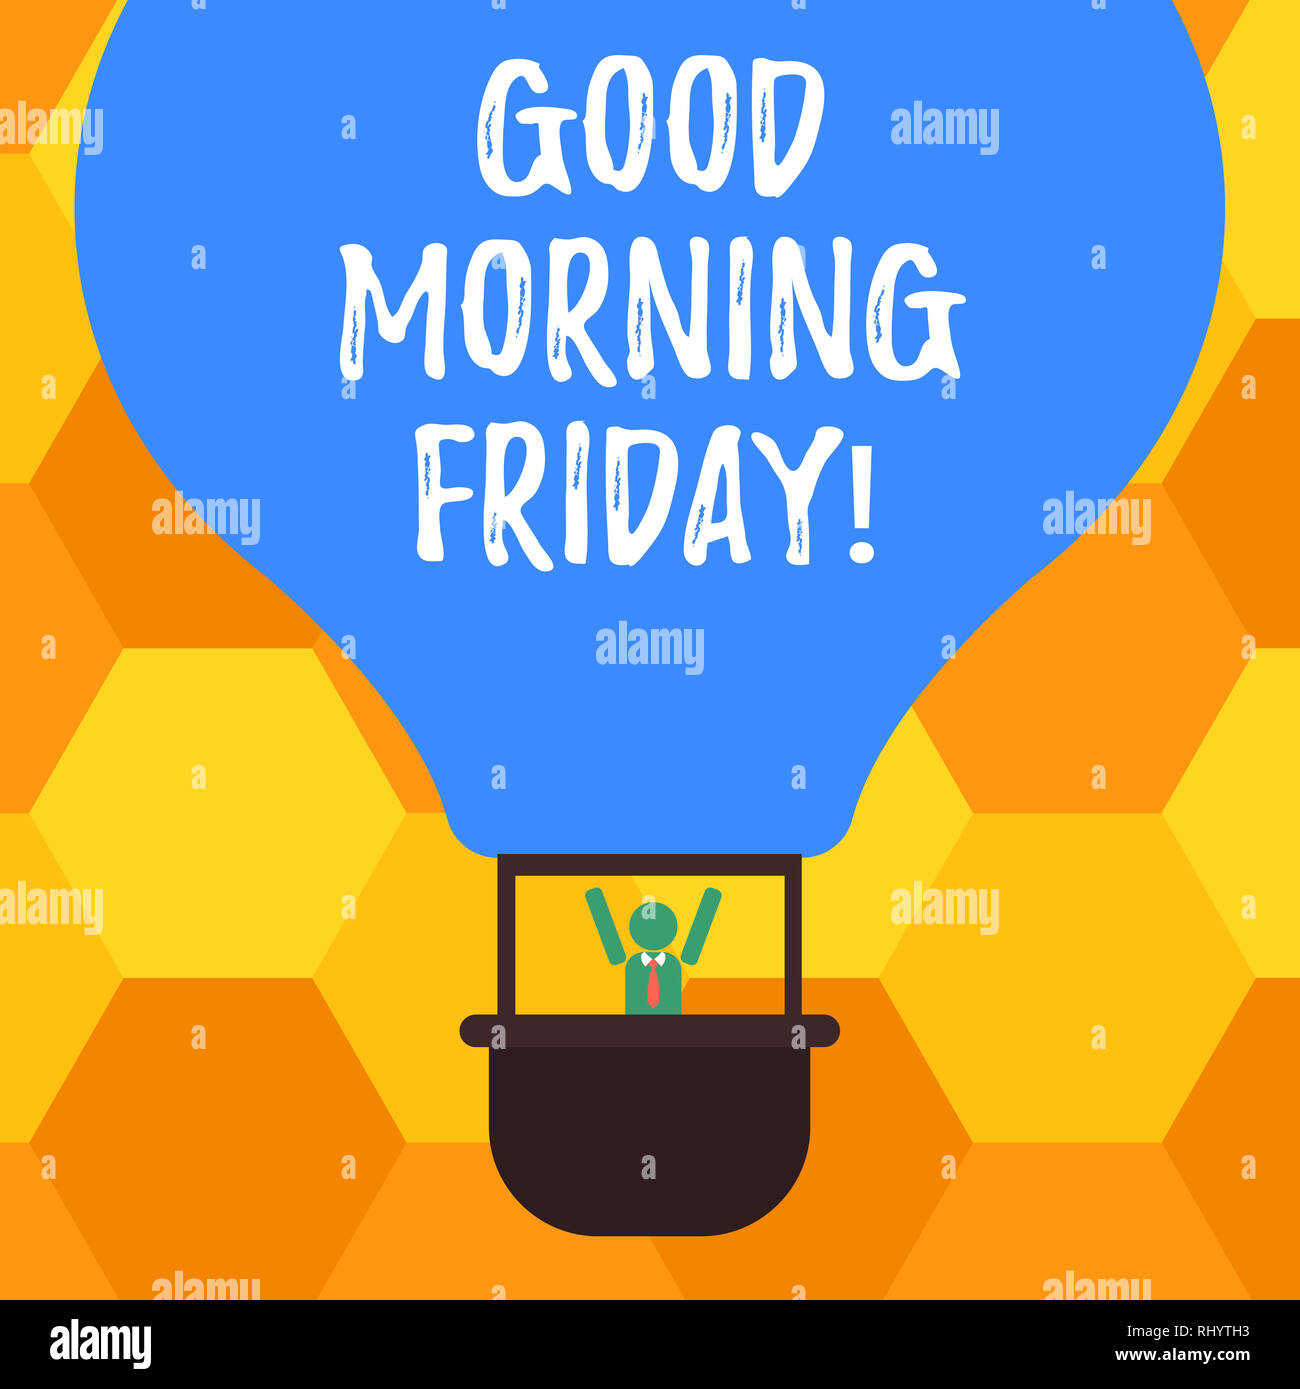 Handwriting Text Good Morning Friday Concept Meaning Greeting